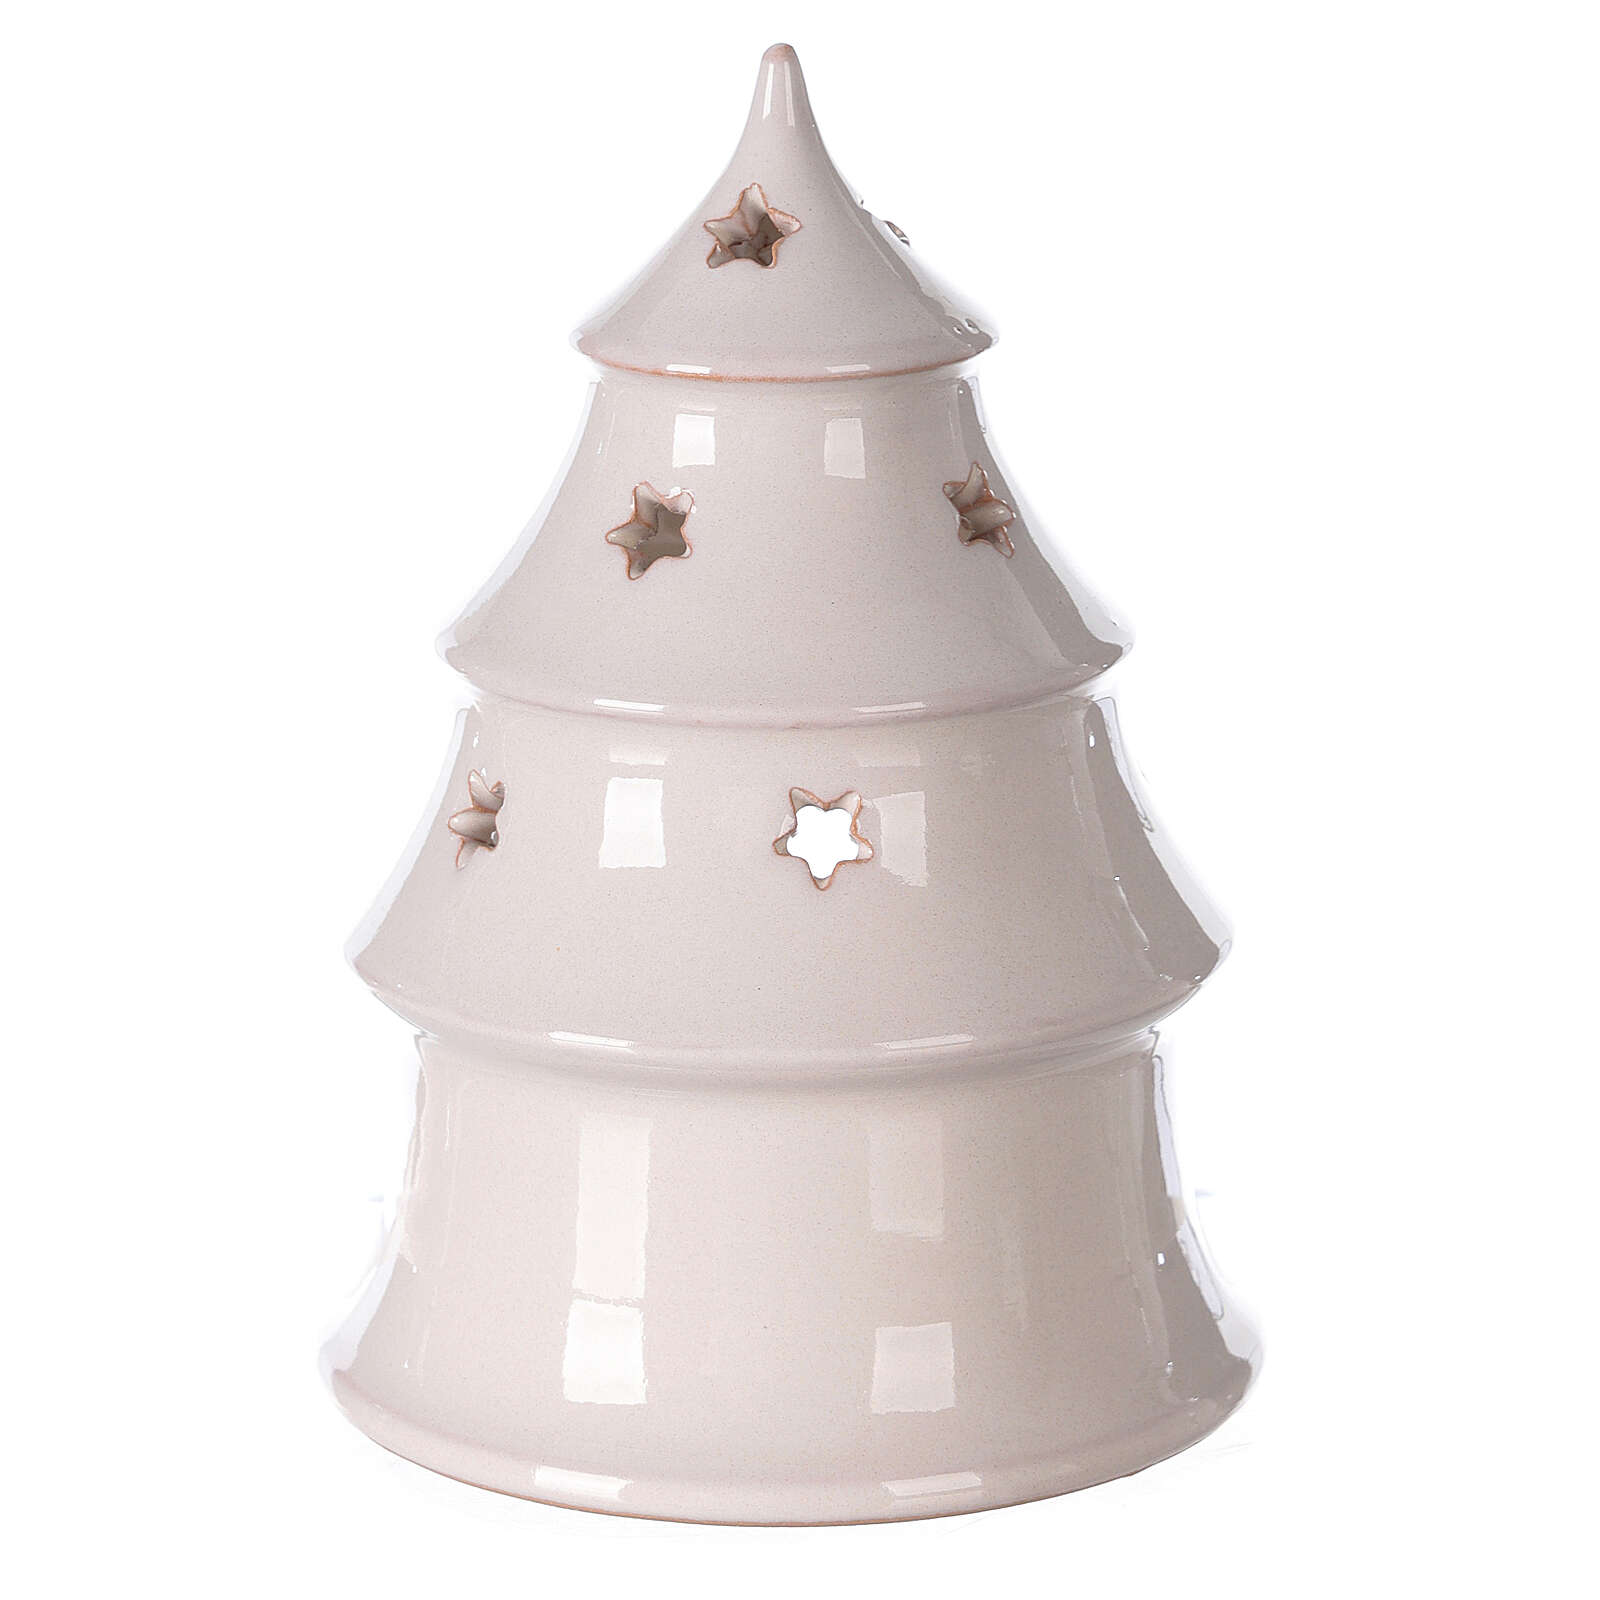 Holy Family in Christmas tree candle holder, two-tone Deruta terracotta 15 cm 4